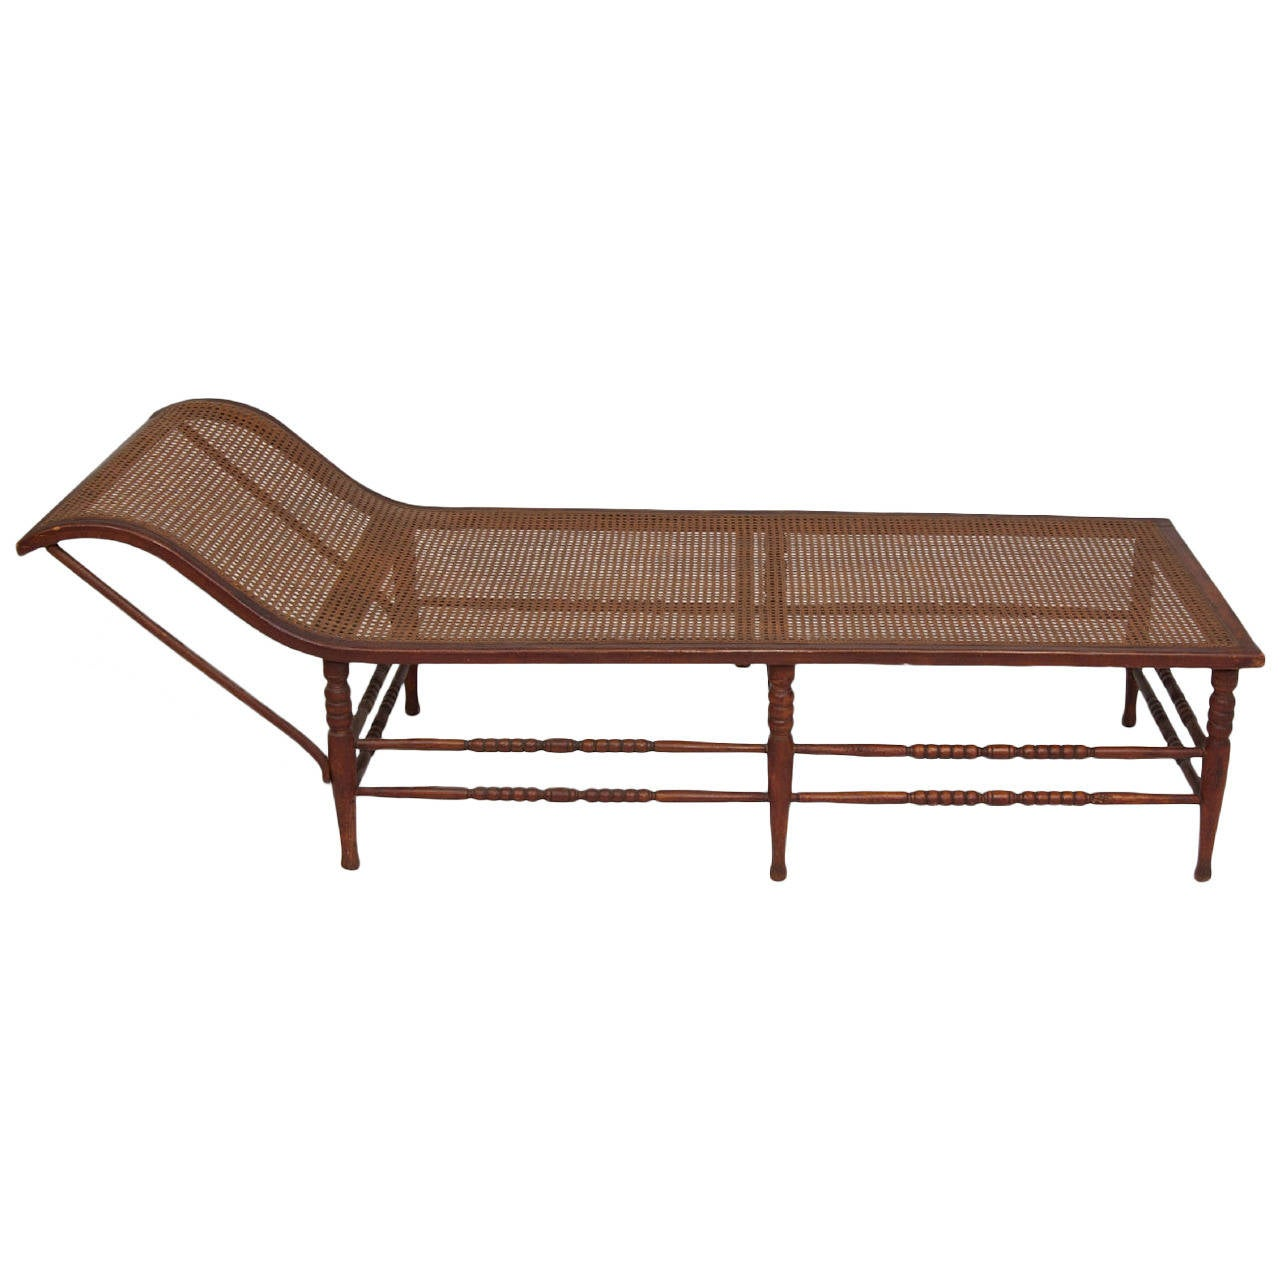 Dutch colonial chaise lounge at 1stdibs - Chaise style colonial ...